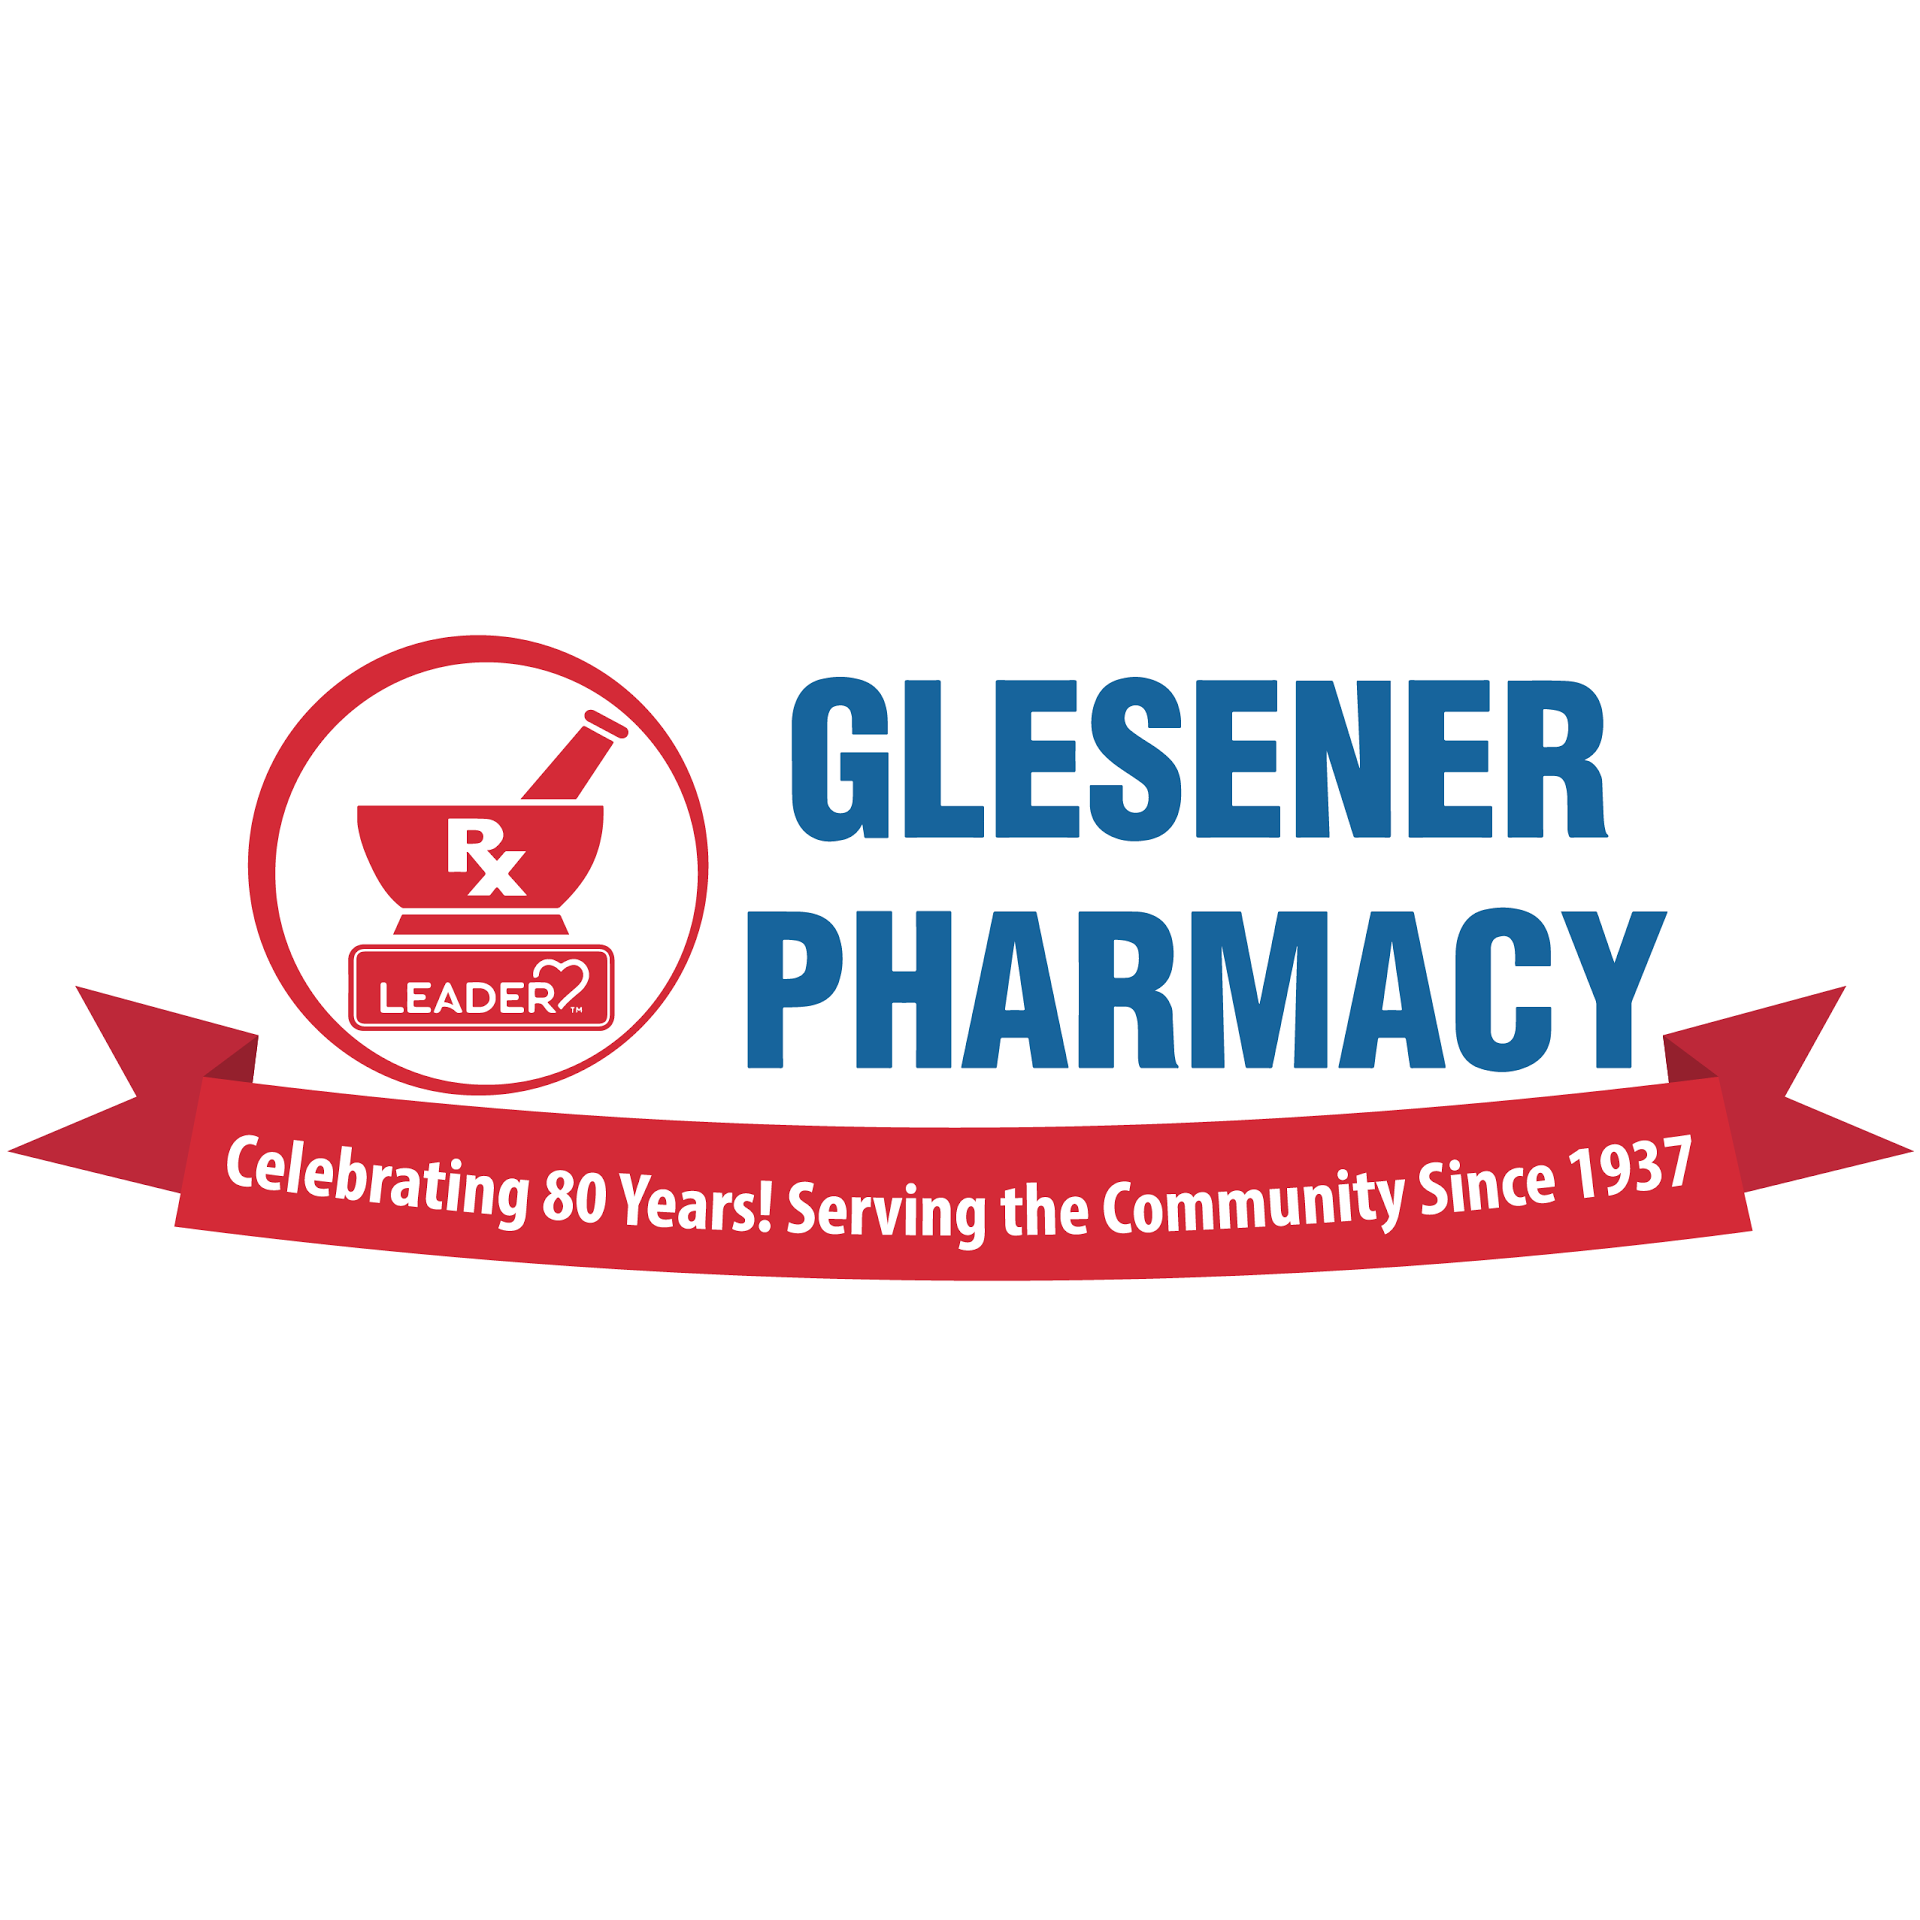 Glesener Pharmacy